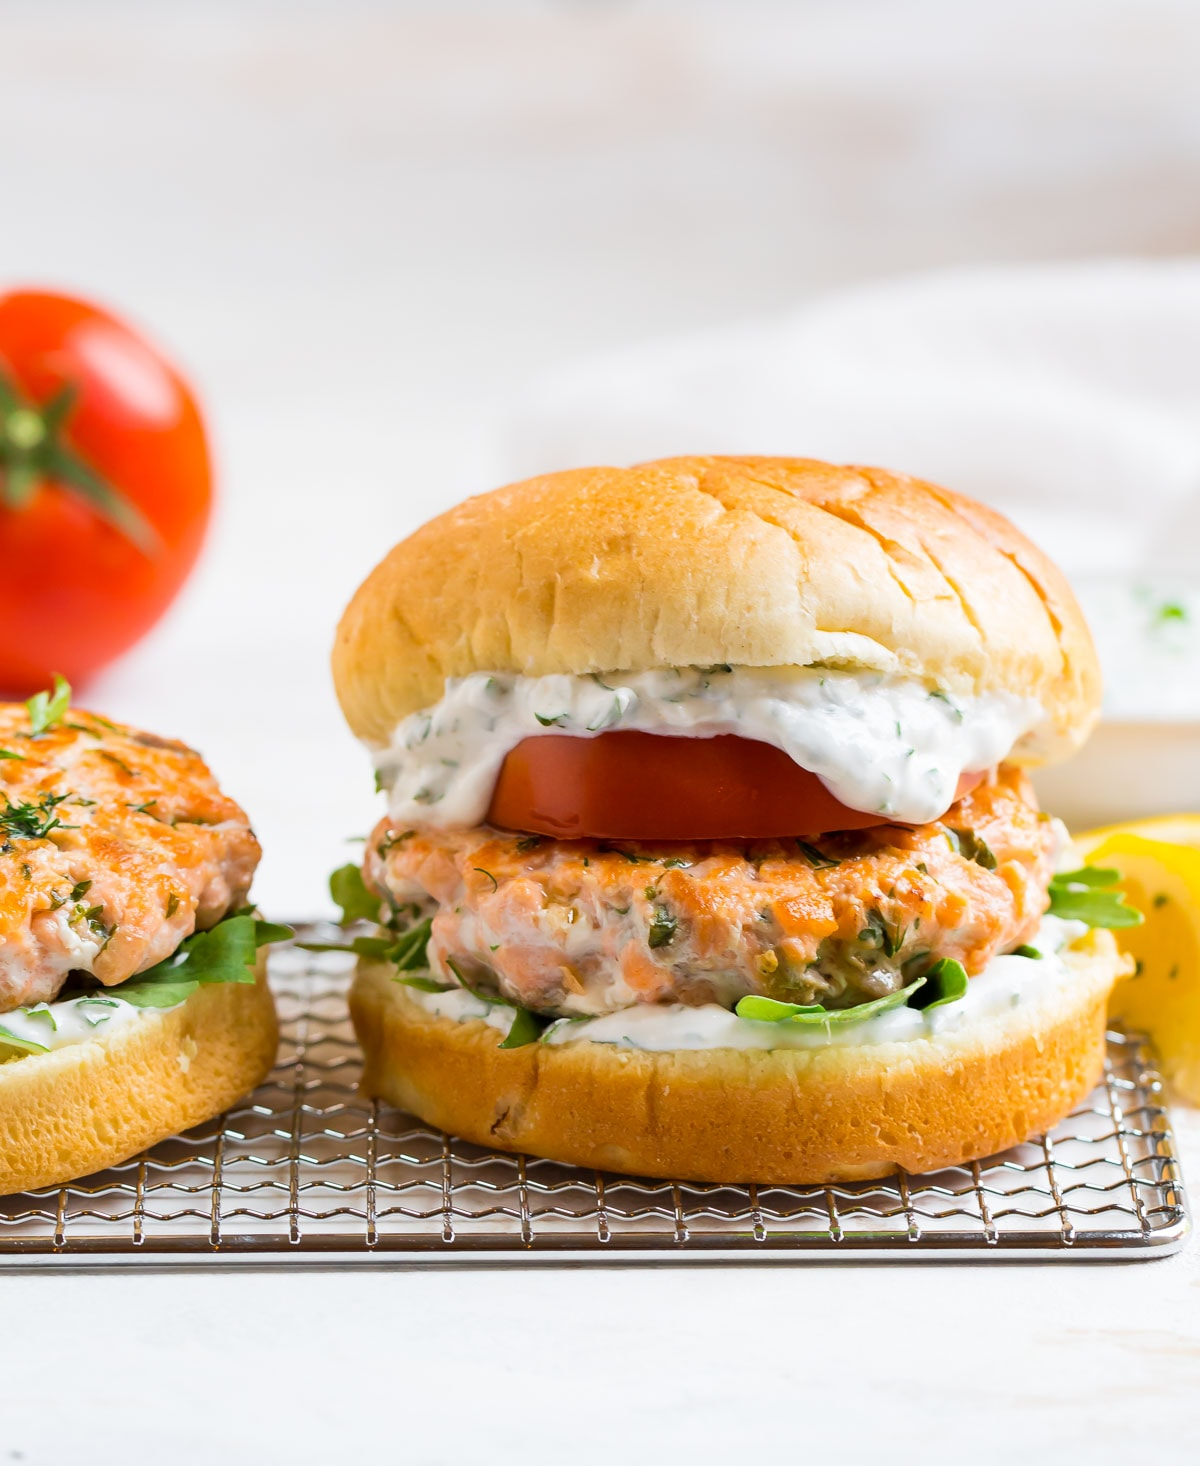 Salmon burgers with tomato, arugula, and sauce